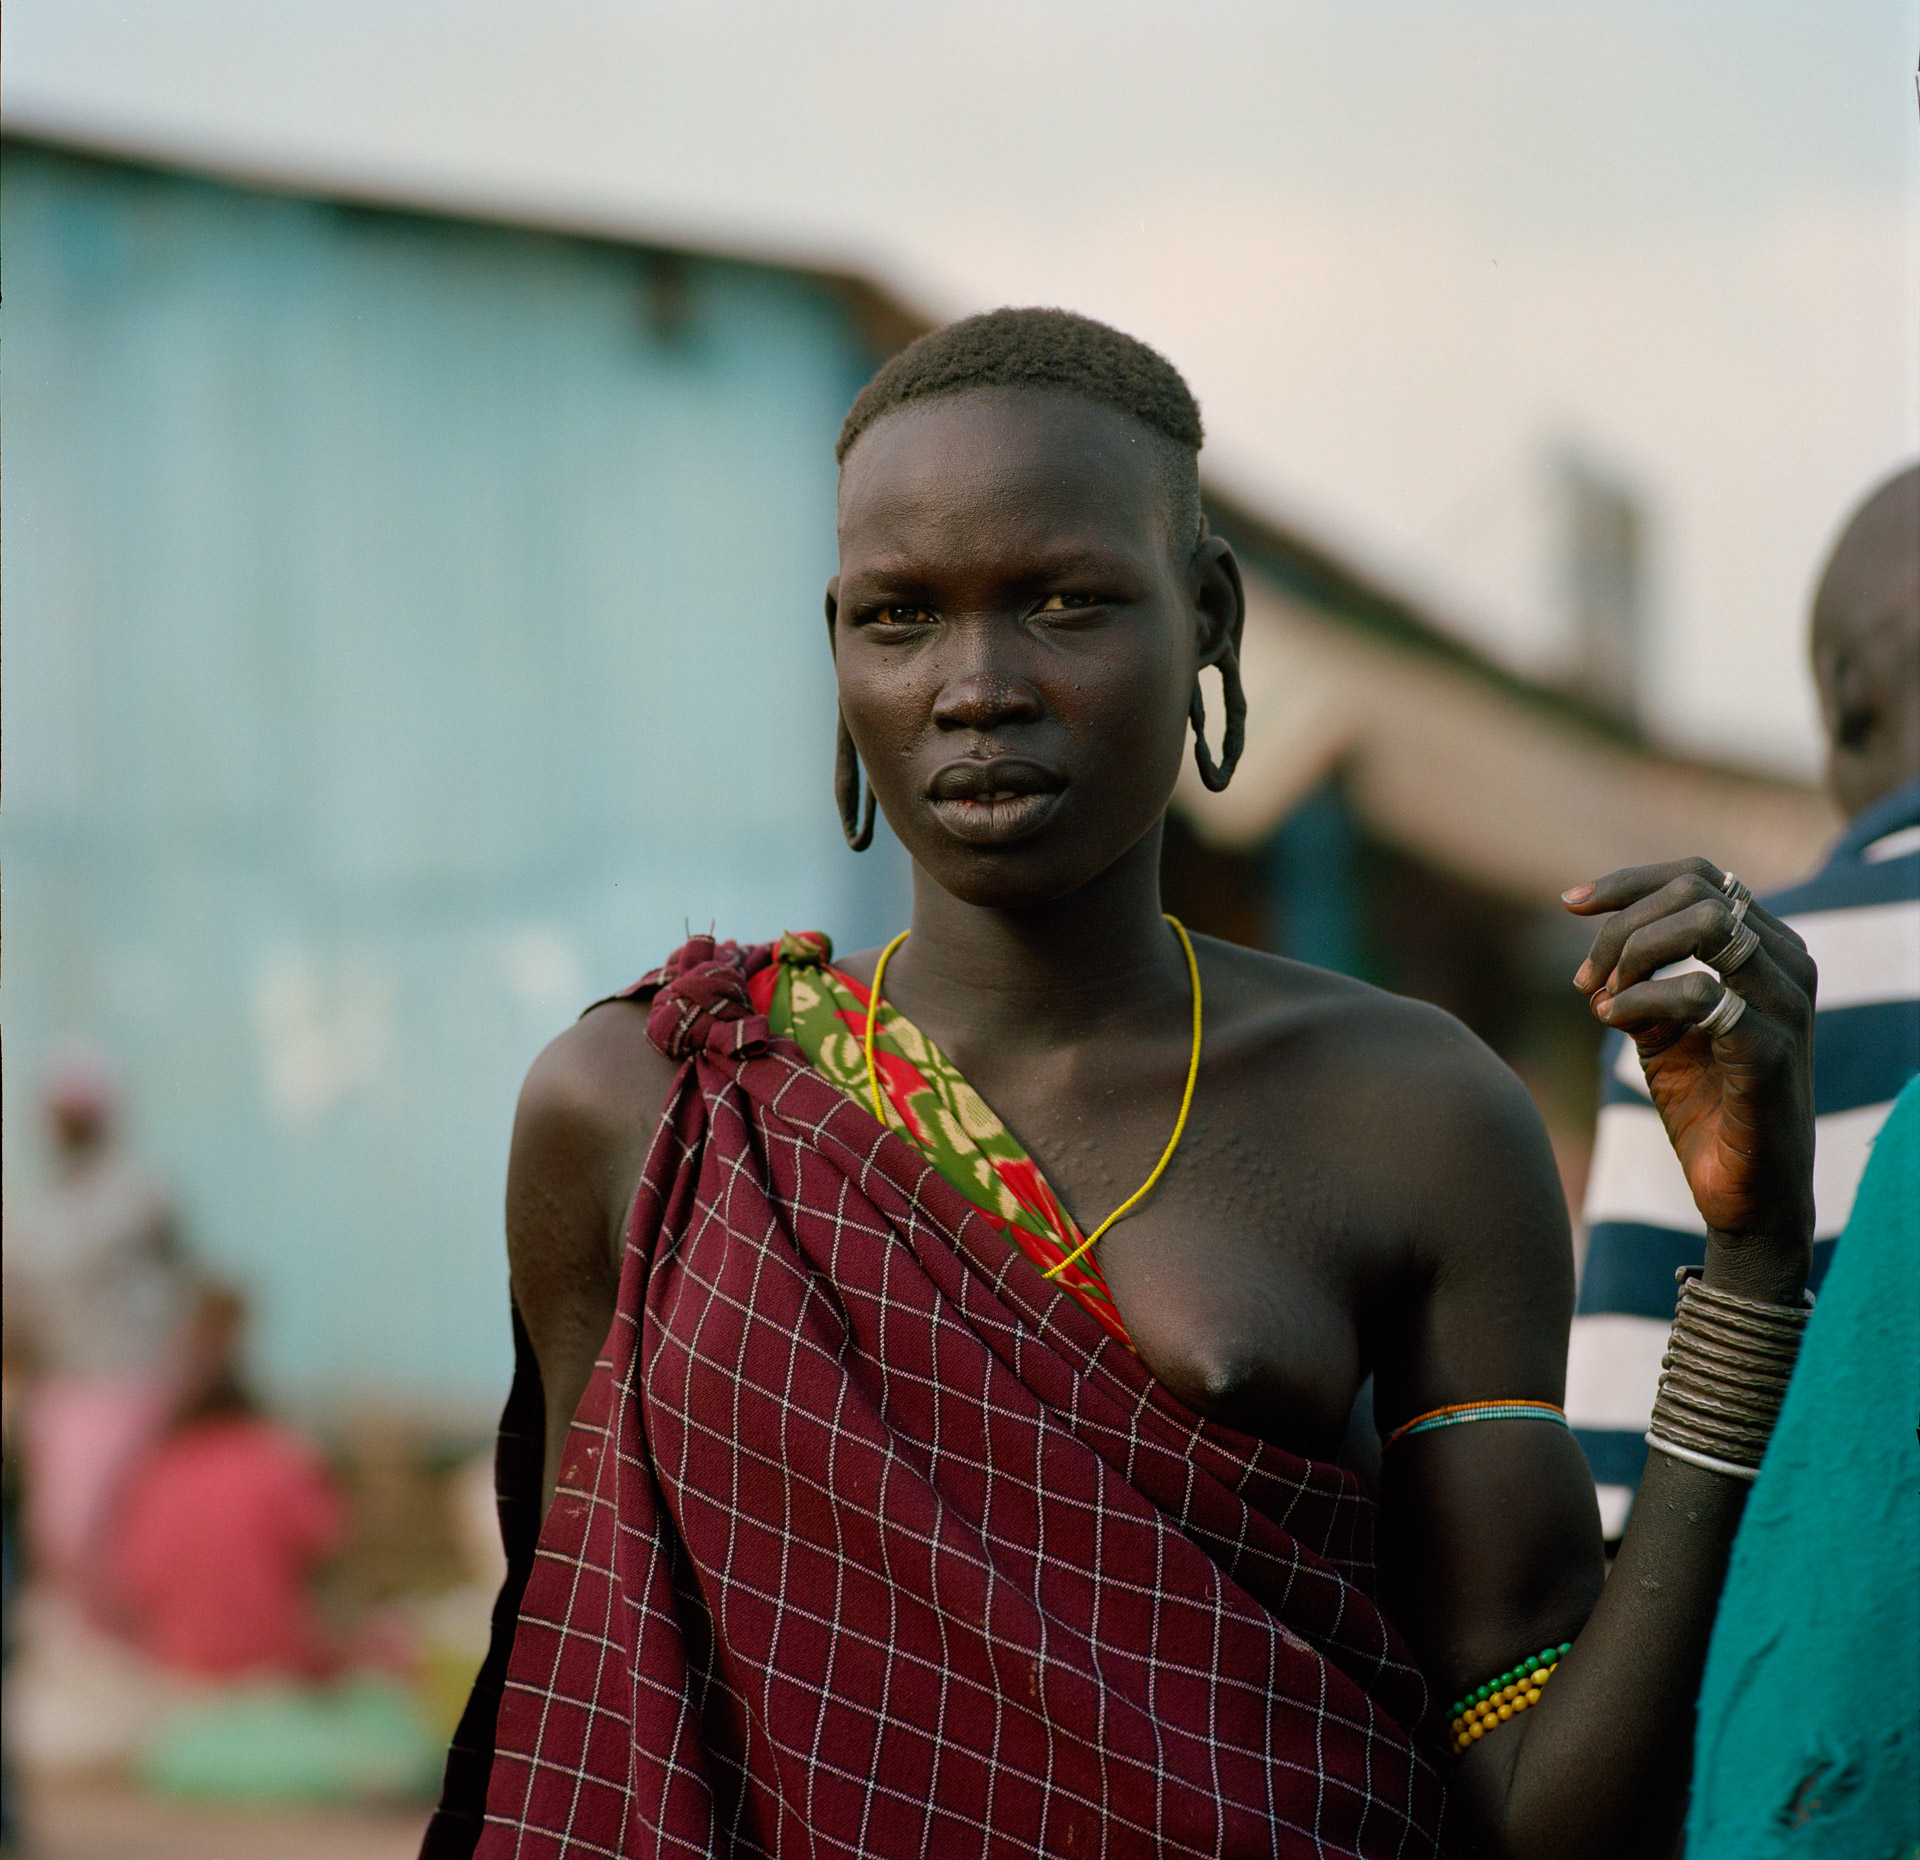 A woman from the Mursi tribe at the market in Jinka